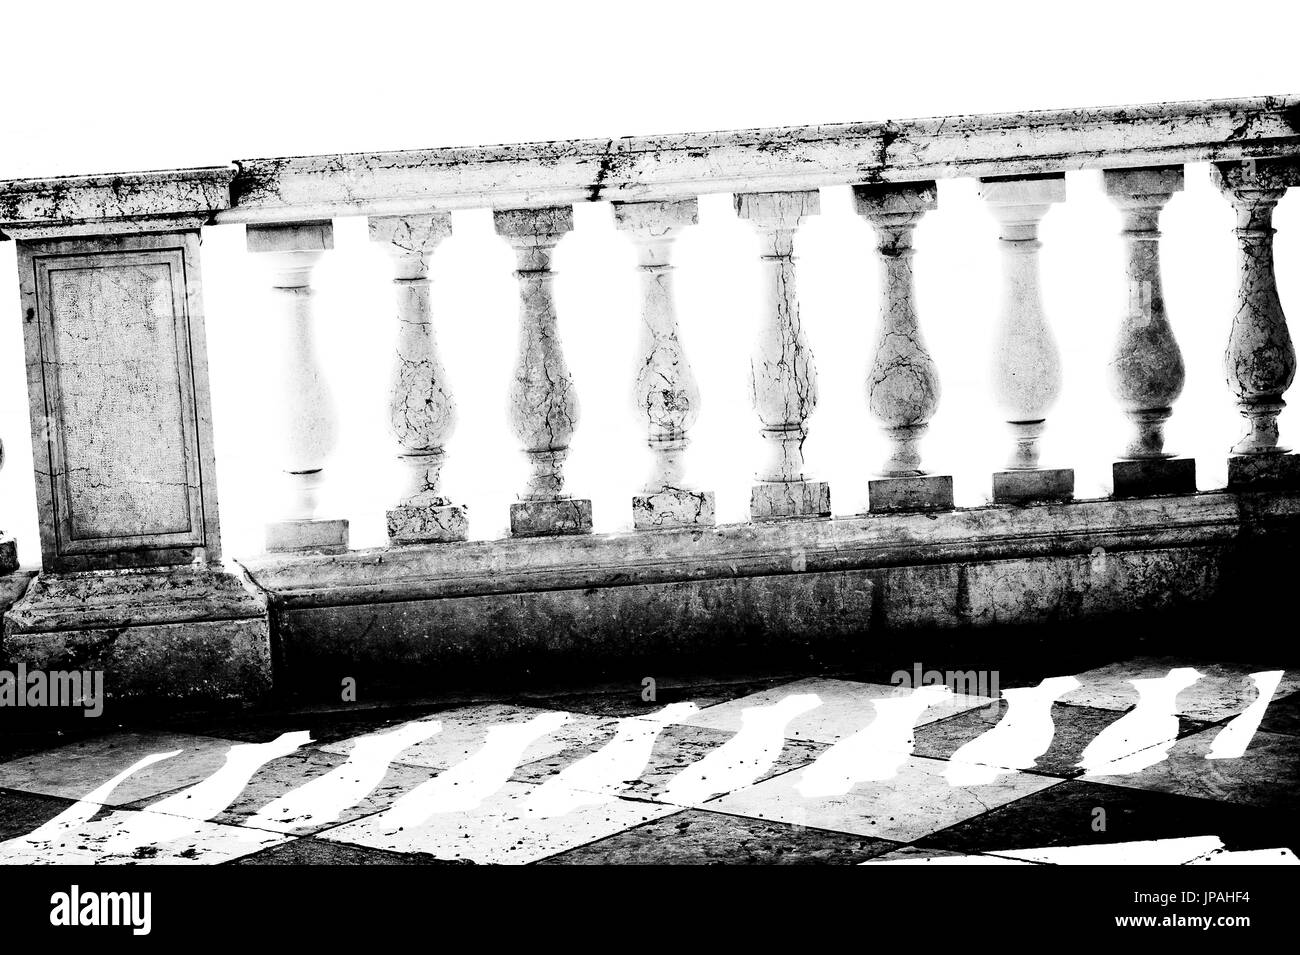 Historical marble railing in Venice. - Stock Image